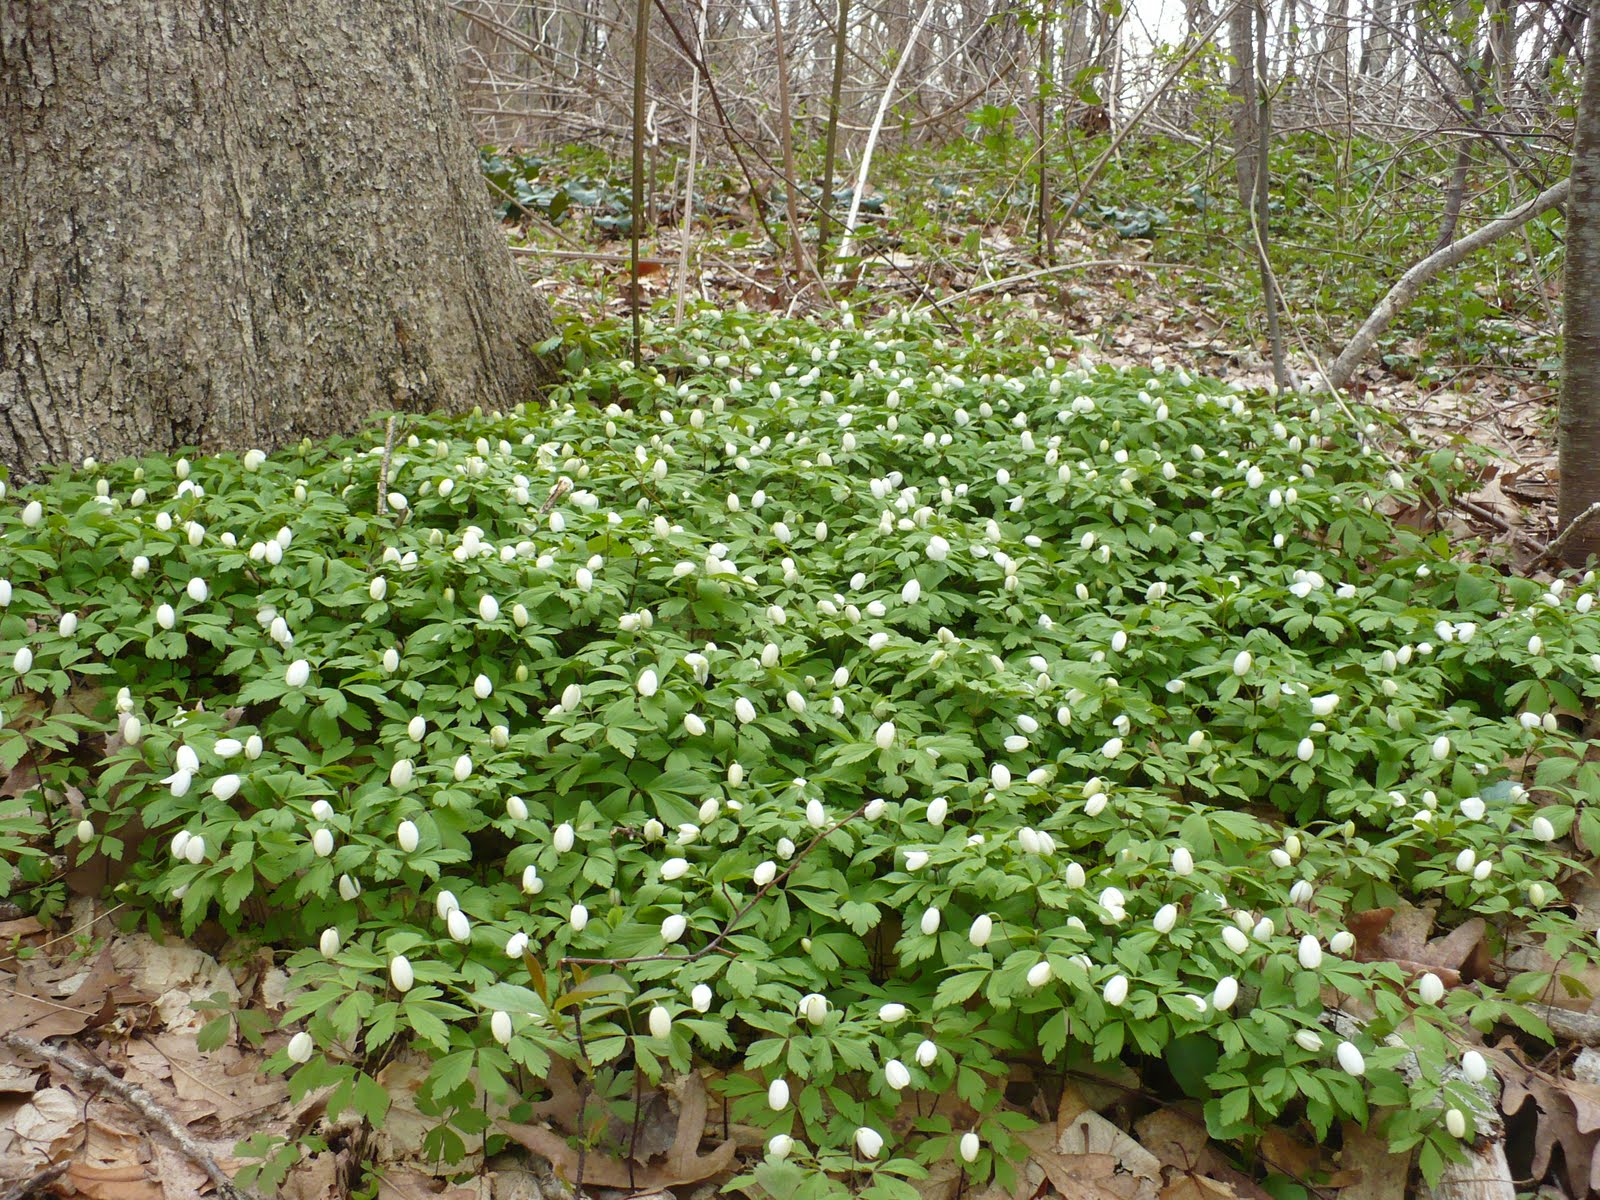 White Flower Ground Cover Plants